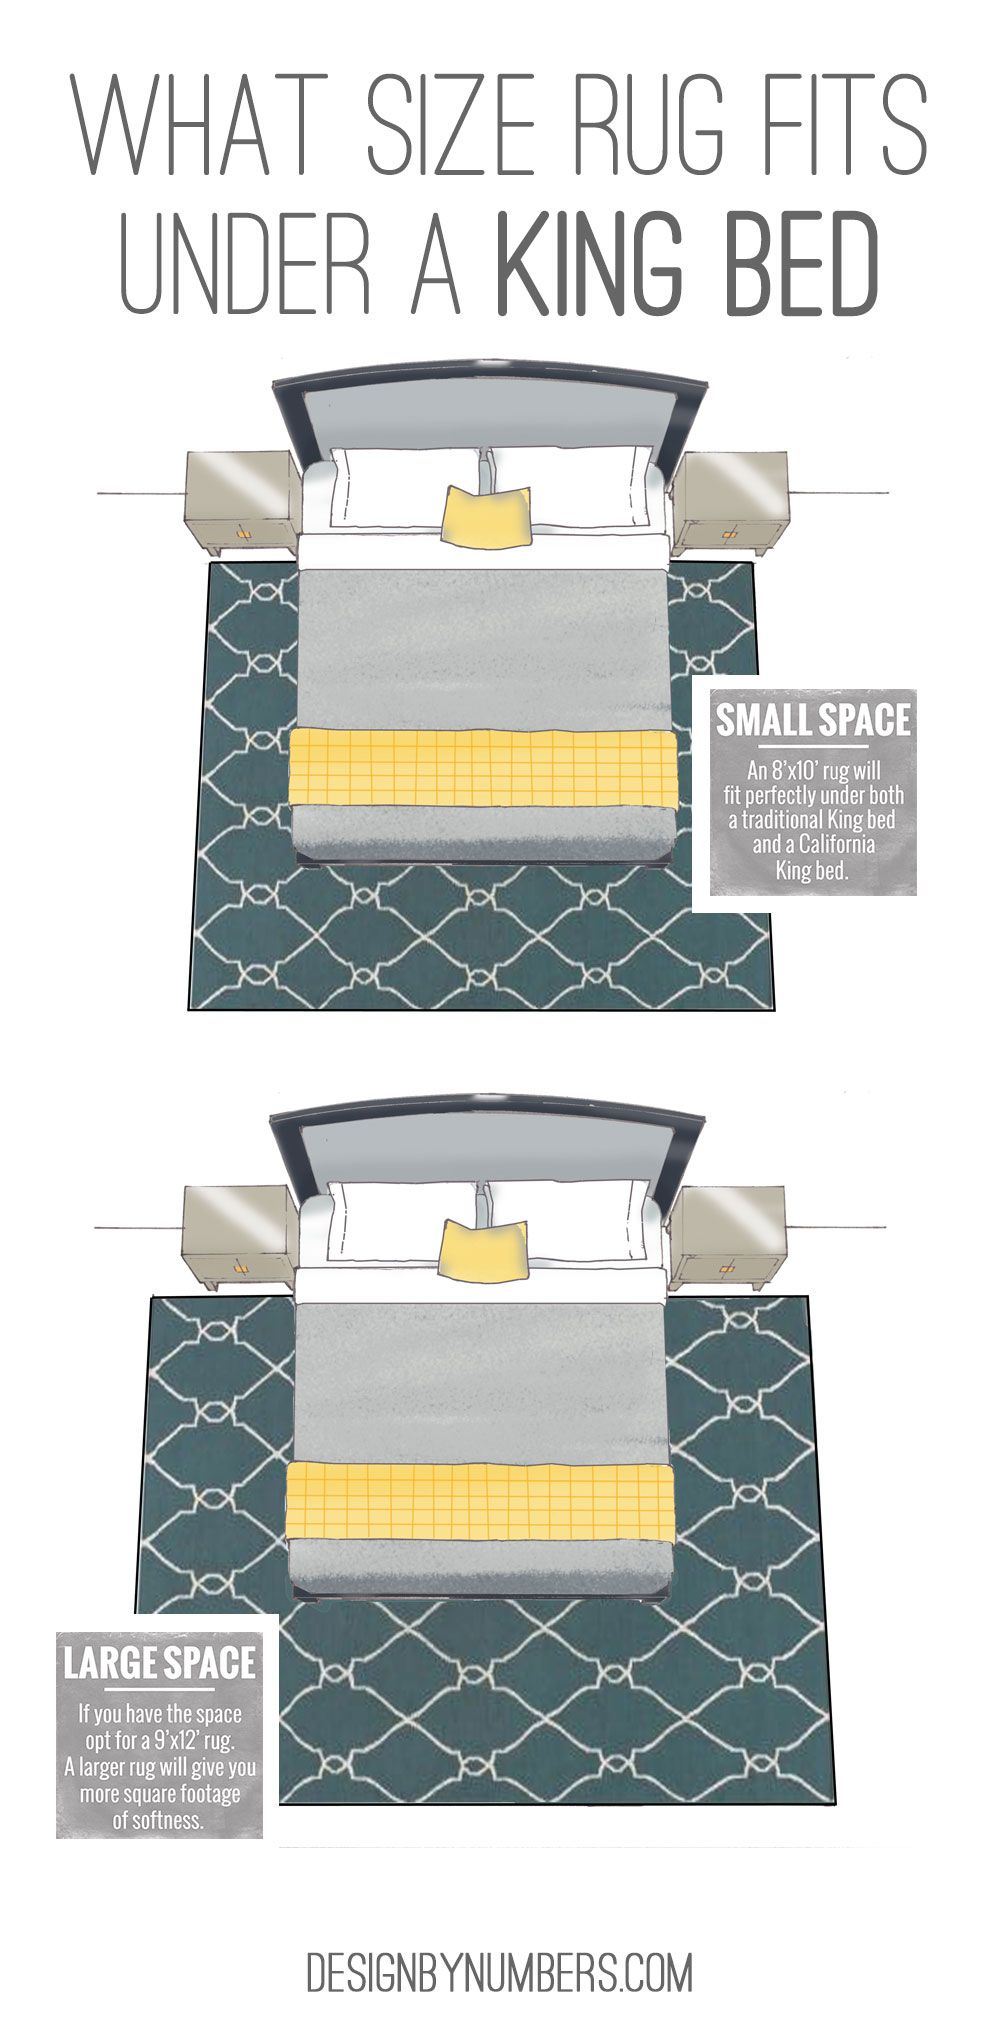 What size rug fits under a king bed design by numbers for 12x12 living room rugs